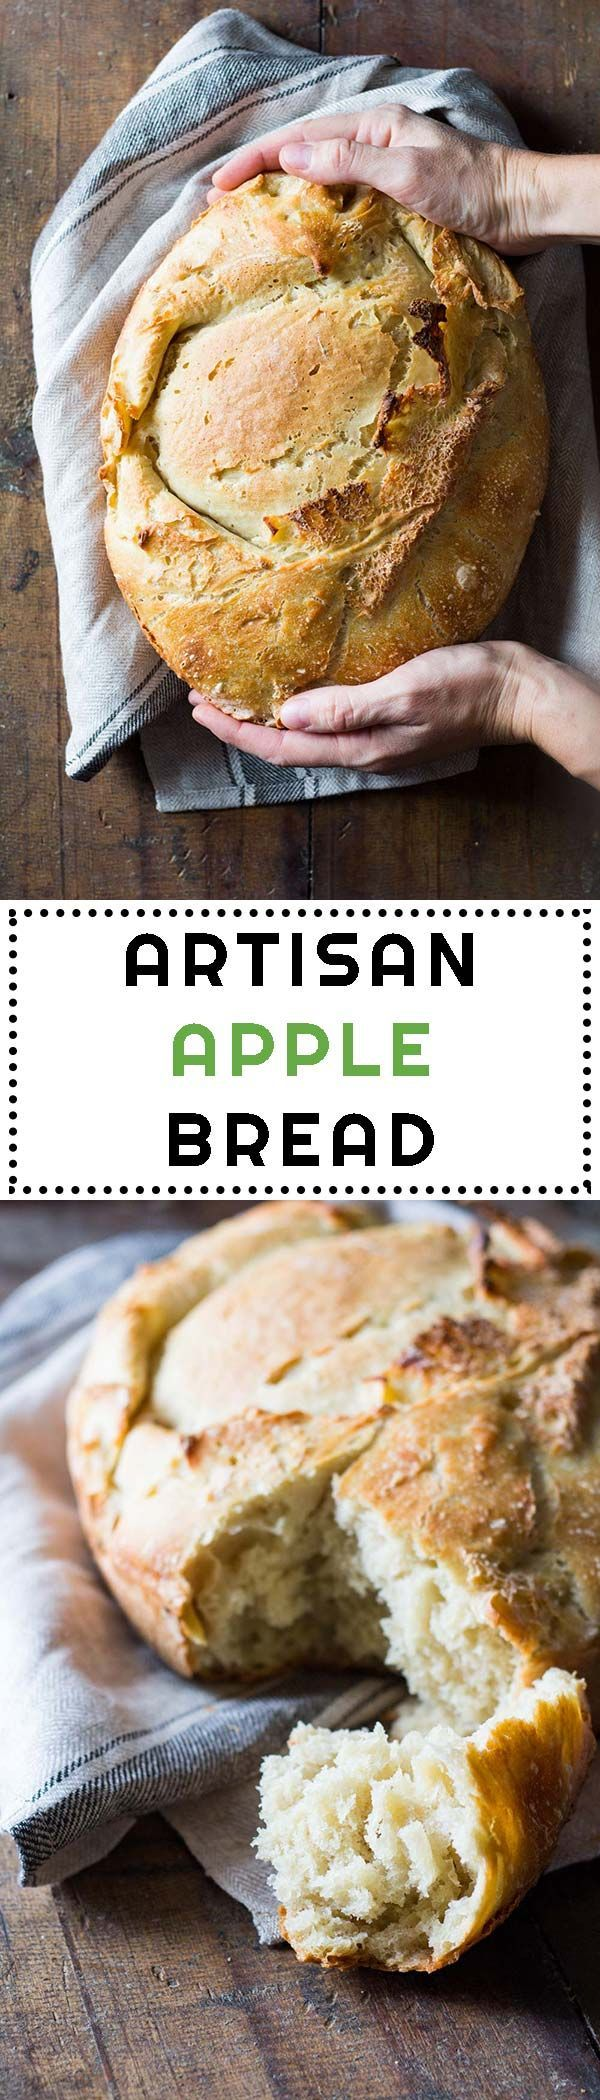 This is a real artisan apple bread with fresh apples. 12-hour starter, knead, rise, fold in apples, rise again, bake, give it a bite and fly to heaven! via @Green Healthy Cooking